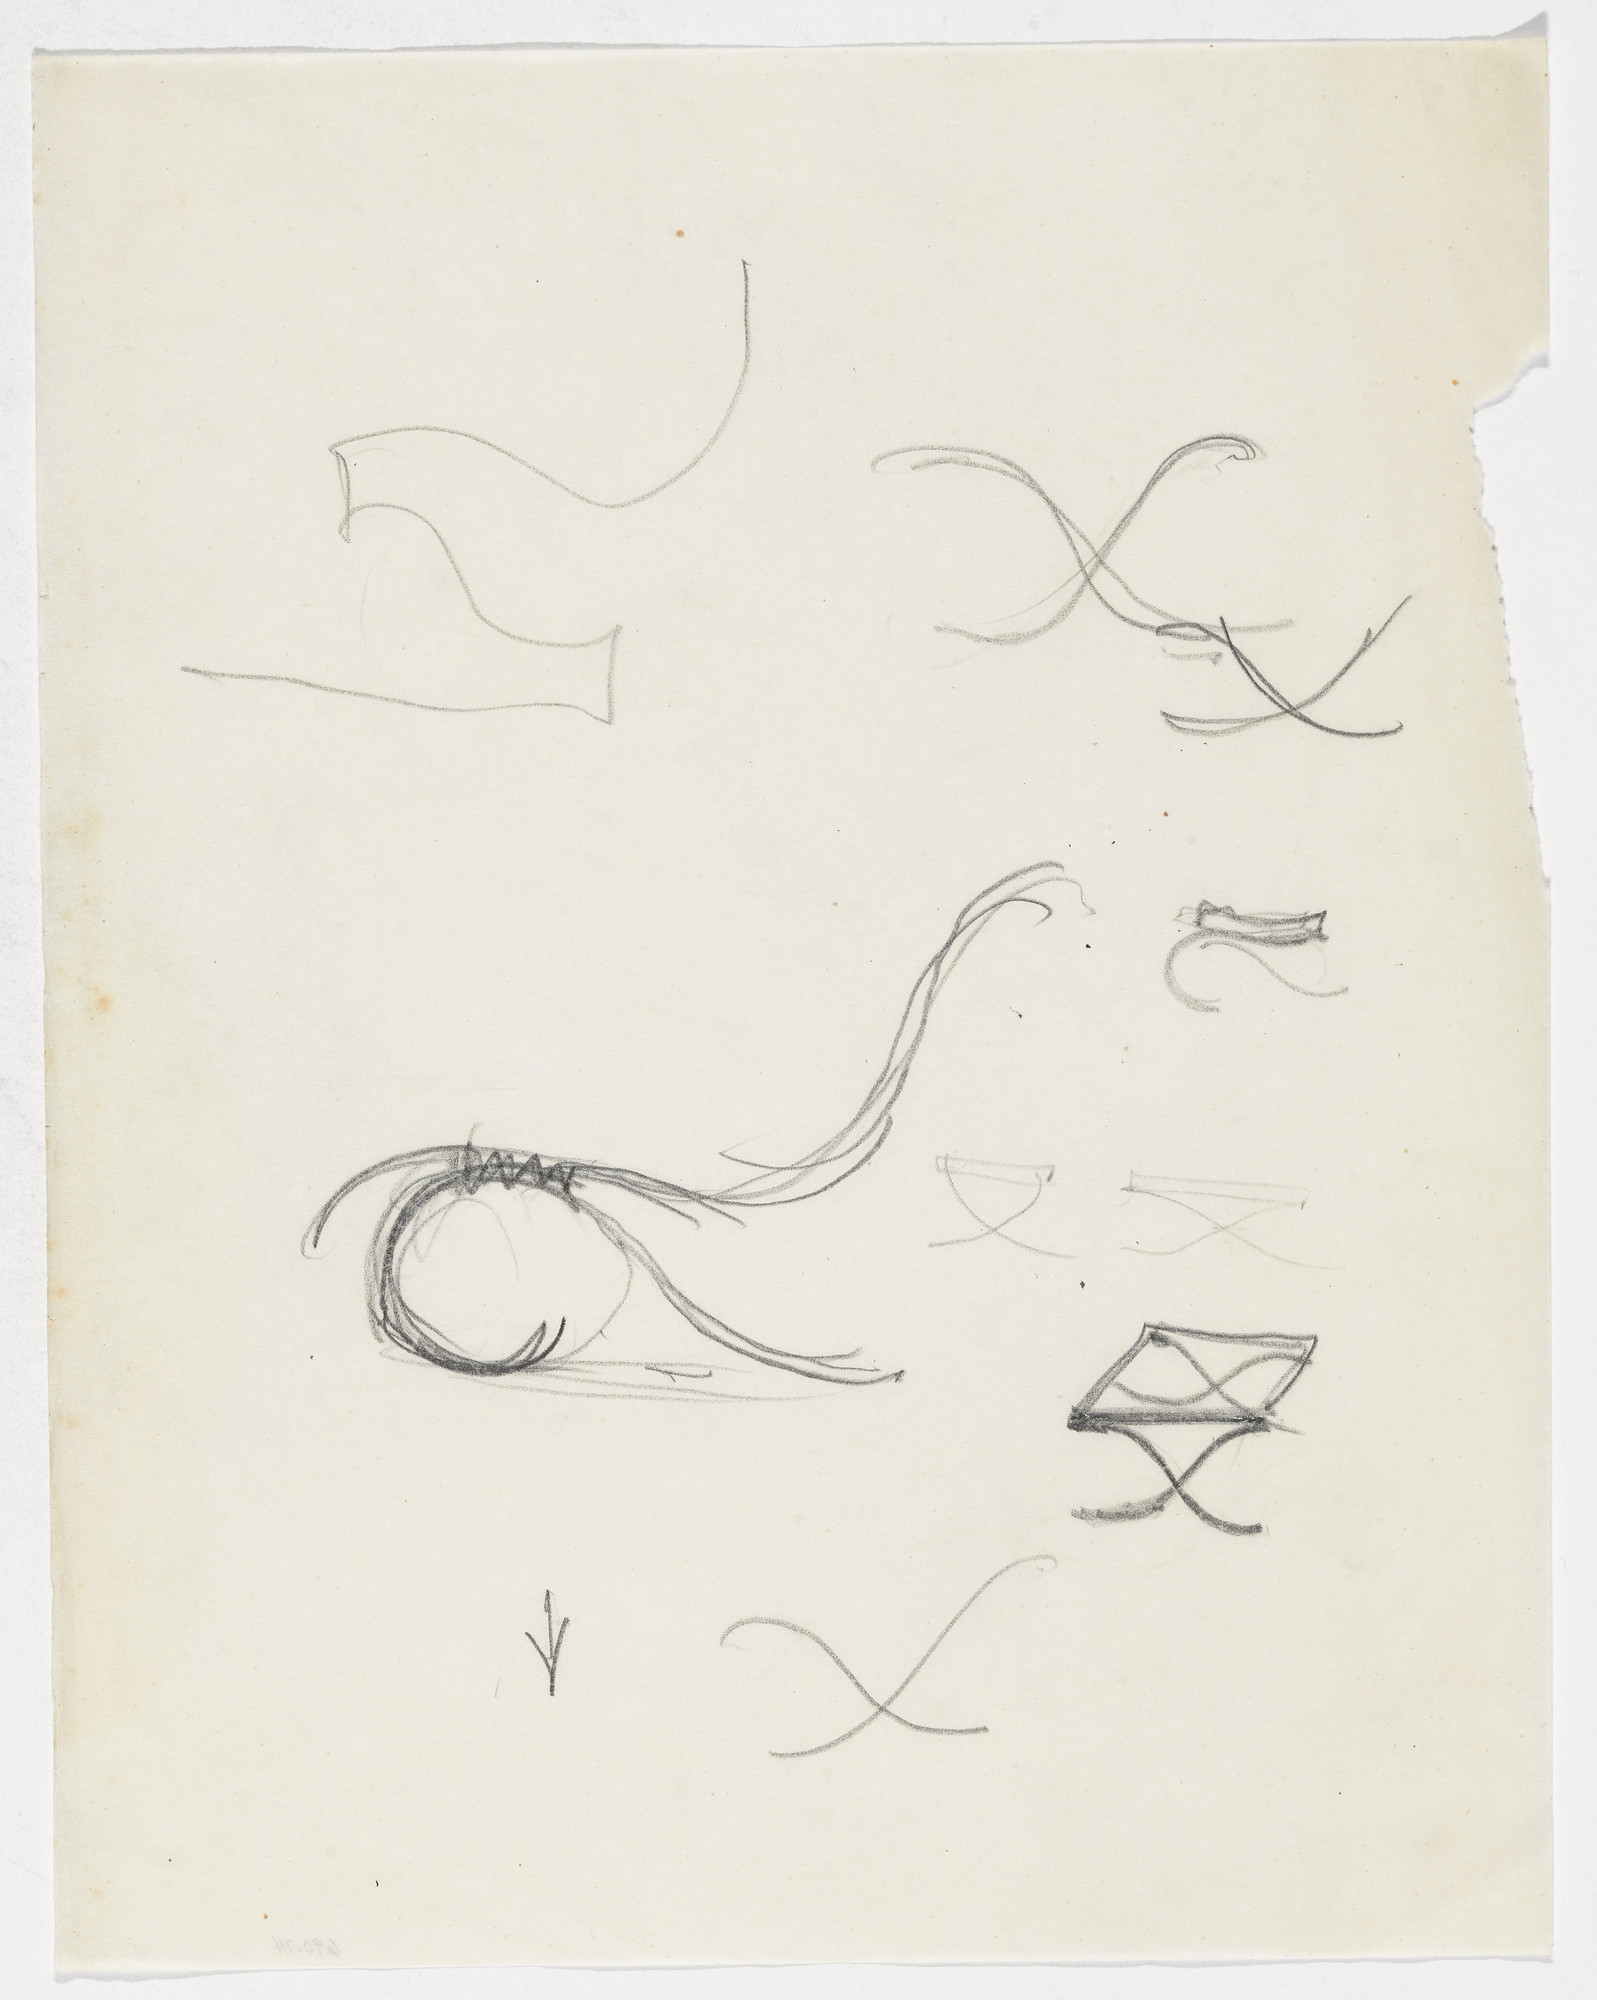 Ludwig Mies van der Rohe. Lounge Chair without Arms. Barcelona Stool. (Elevation sketches). 1933-1934